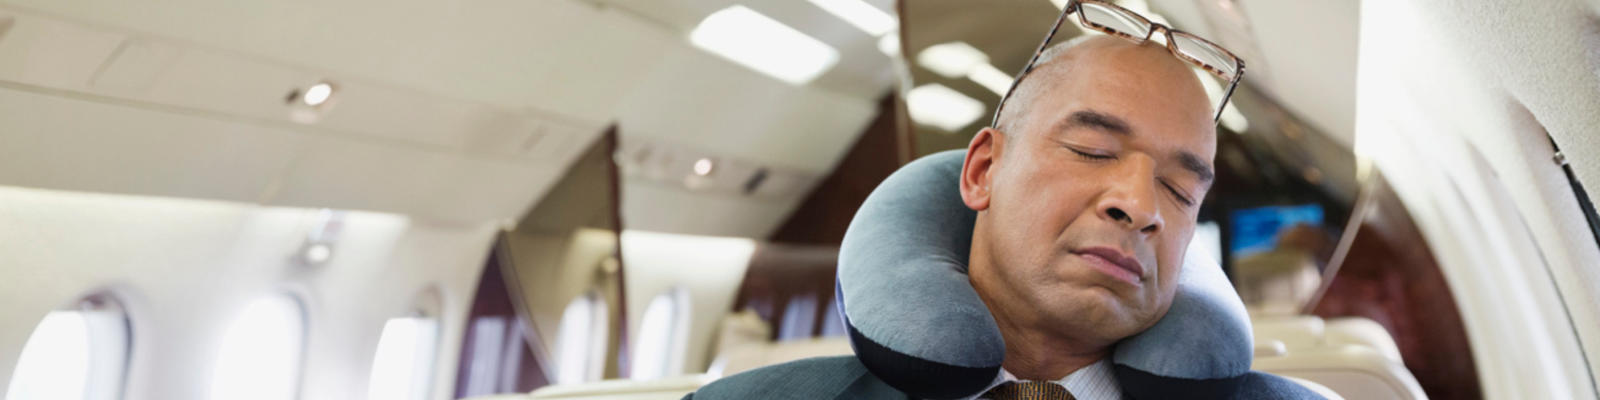 A man sleeping on a plane with a neck pillow around his neck